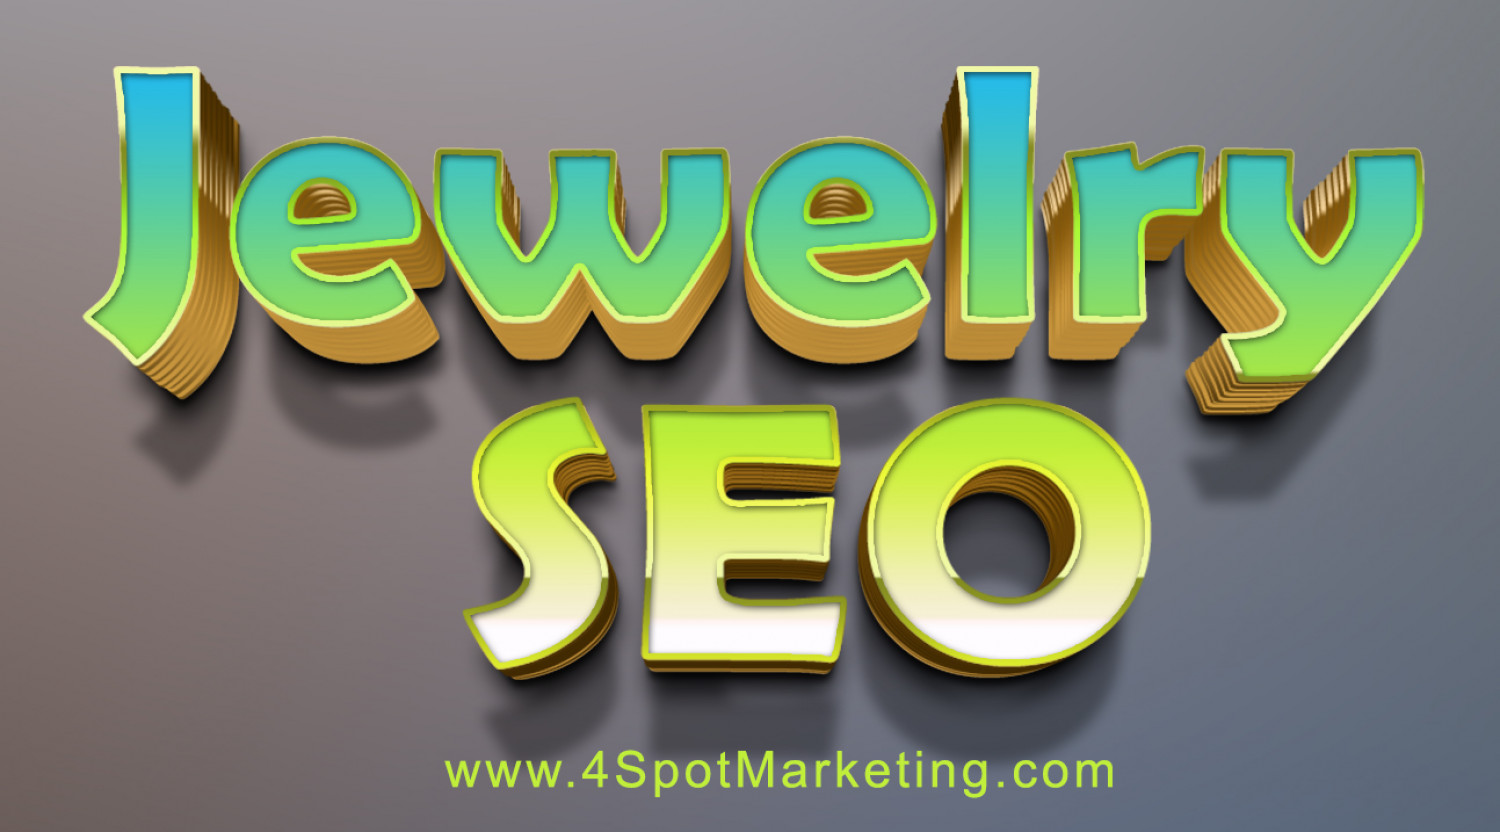 jewelry seo Infographic